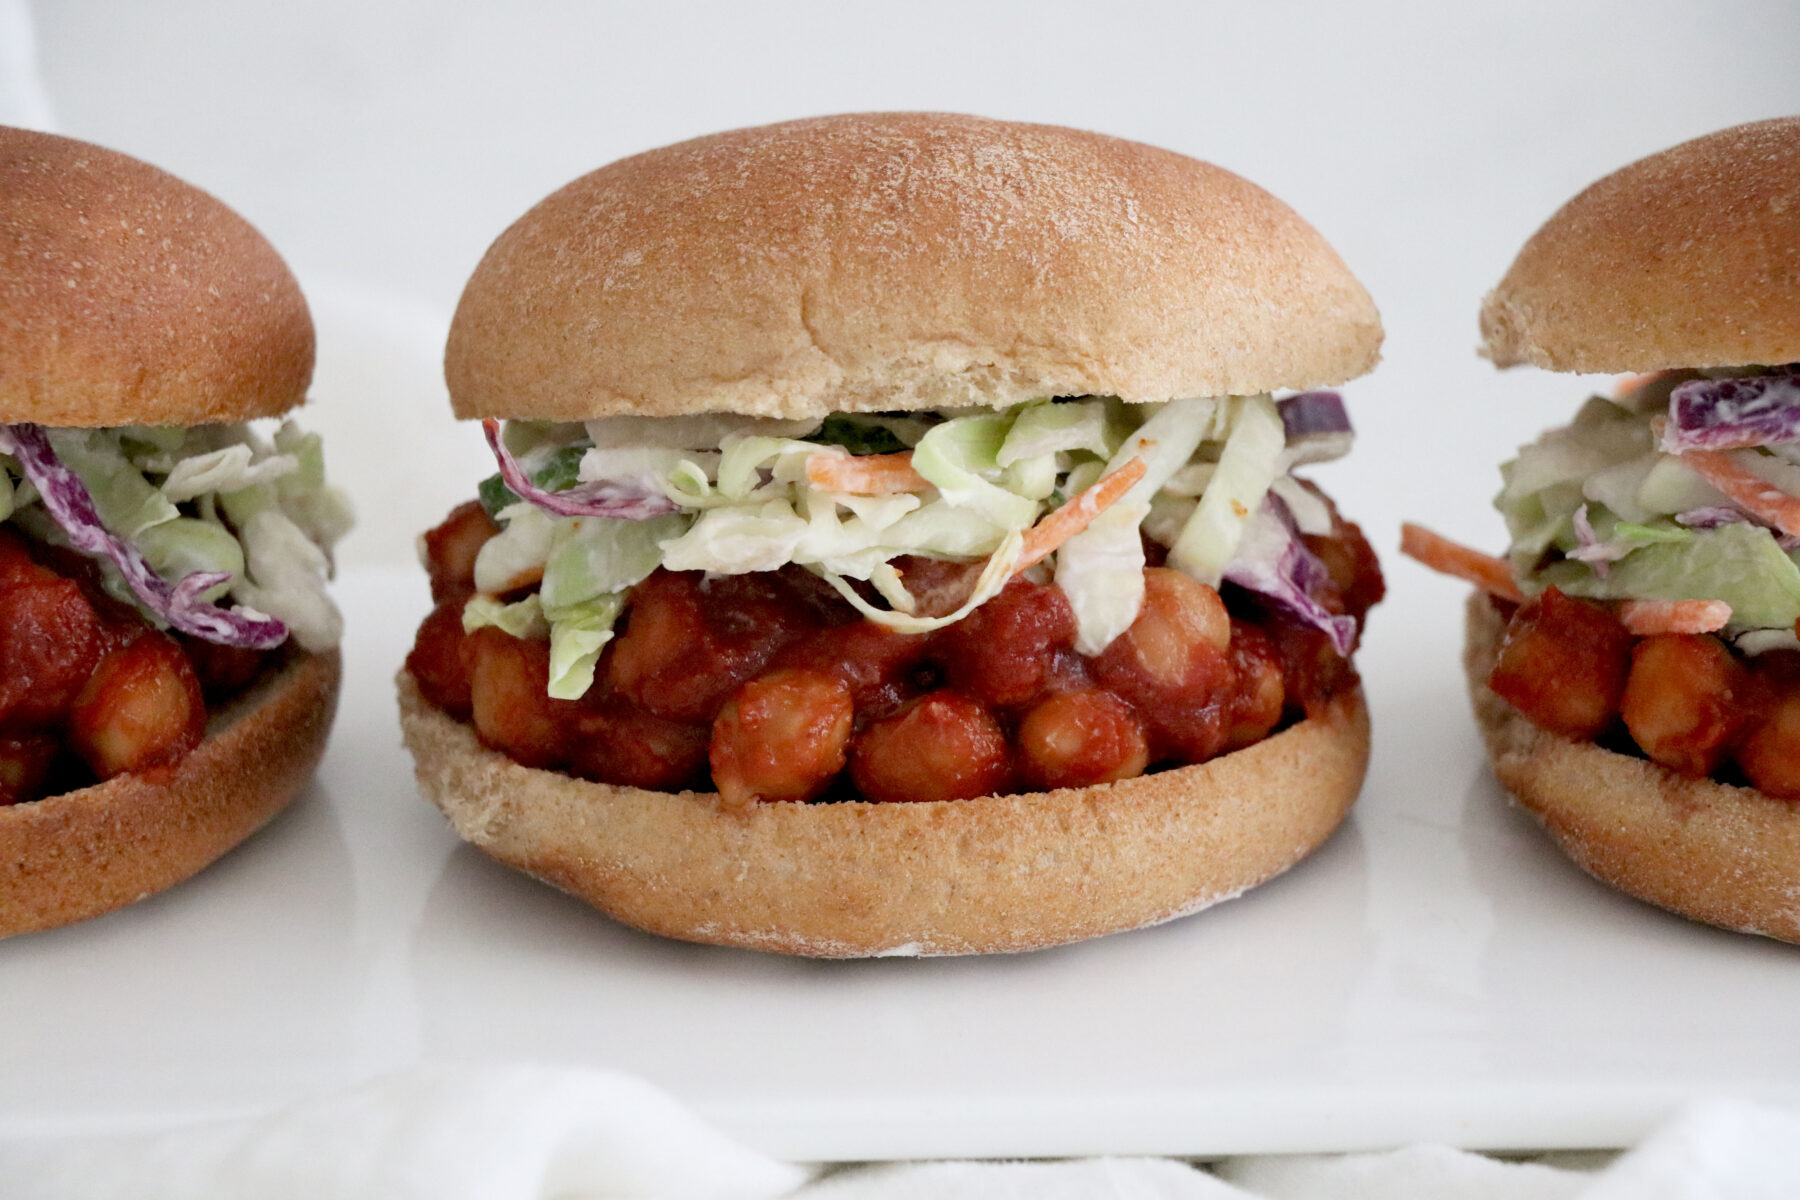 3 bbq chickpea burgers topped with coleslaw.